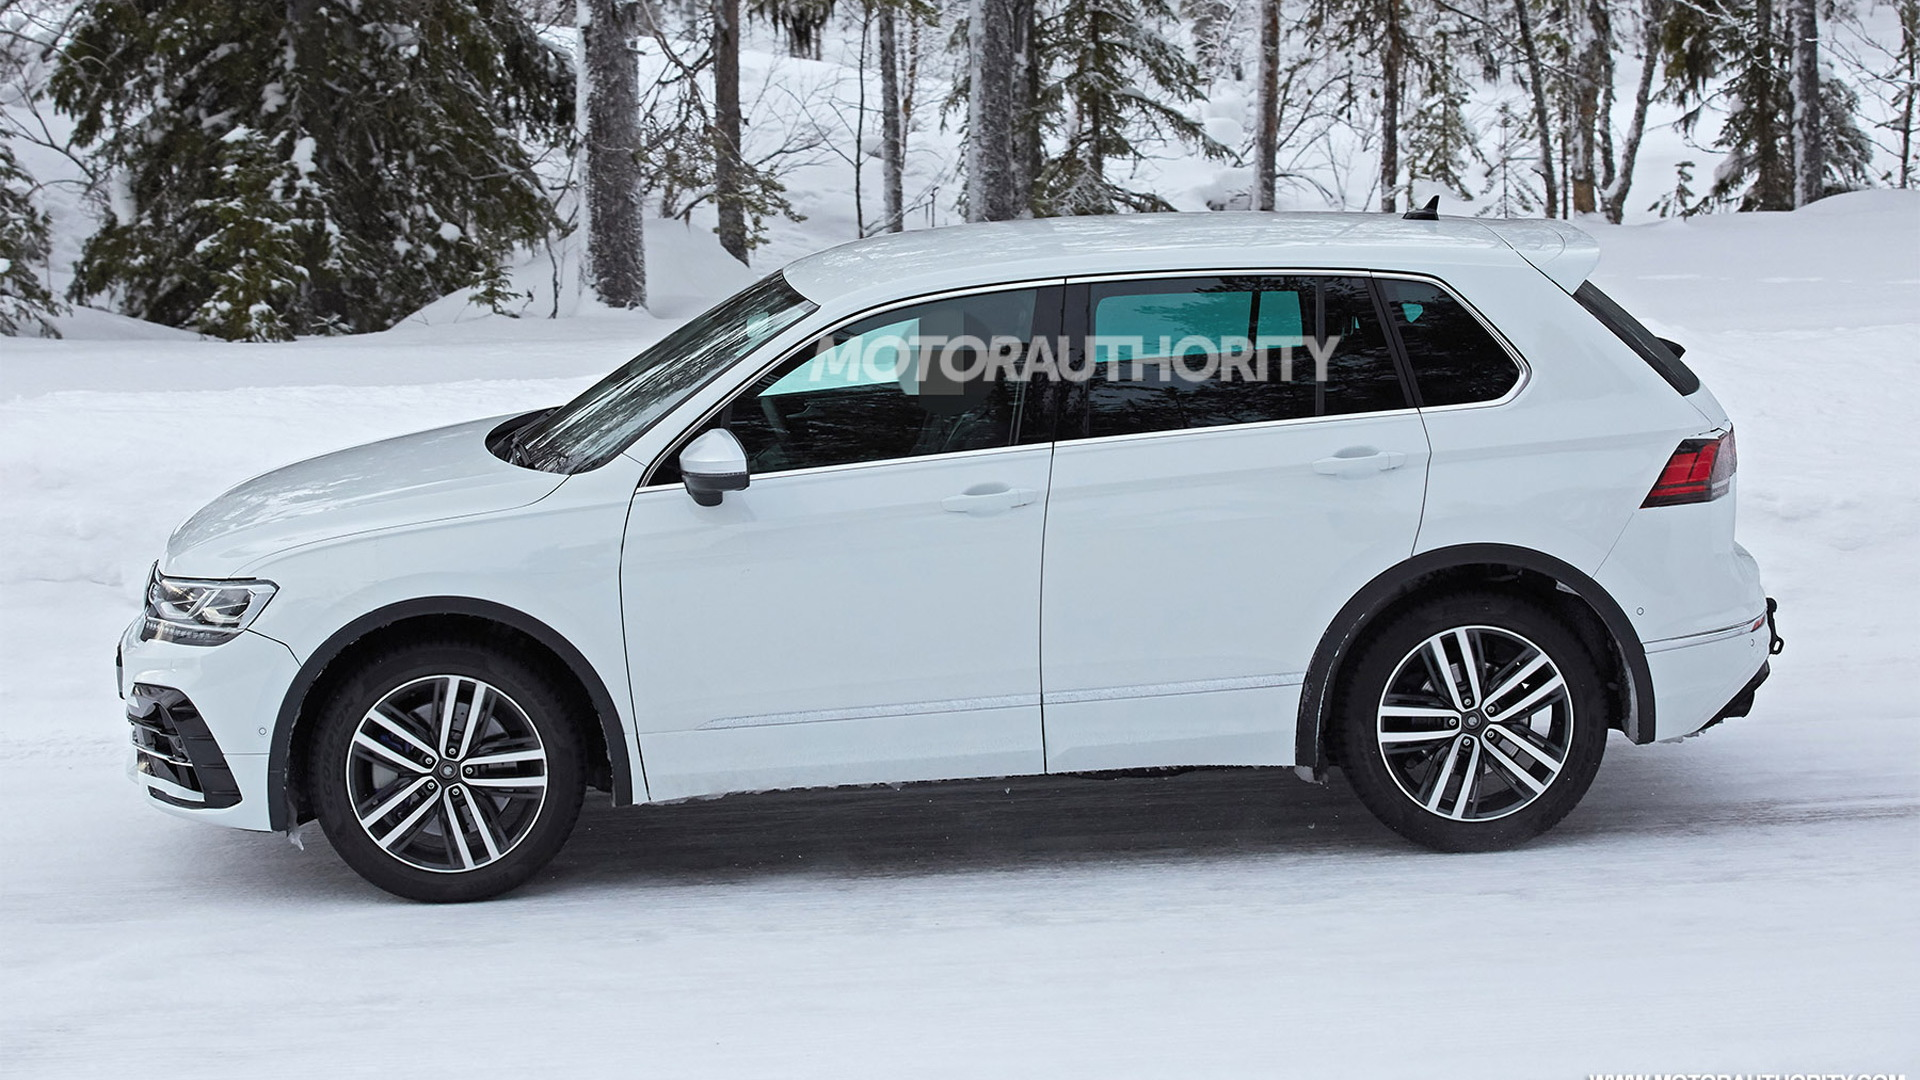 2021 Volkswagen Tiguan R spy shots - Photo credit: S. Baldauf/SB-Medien